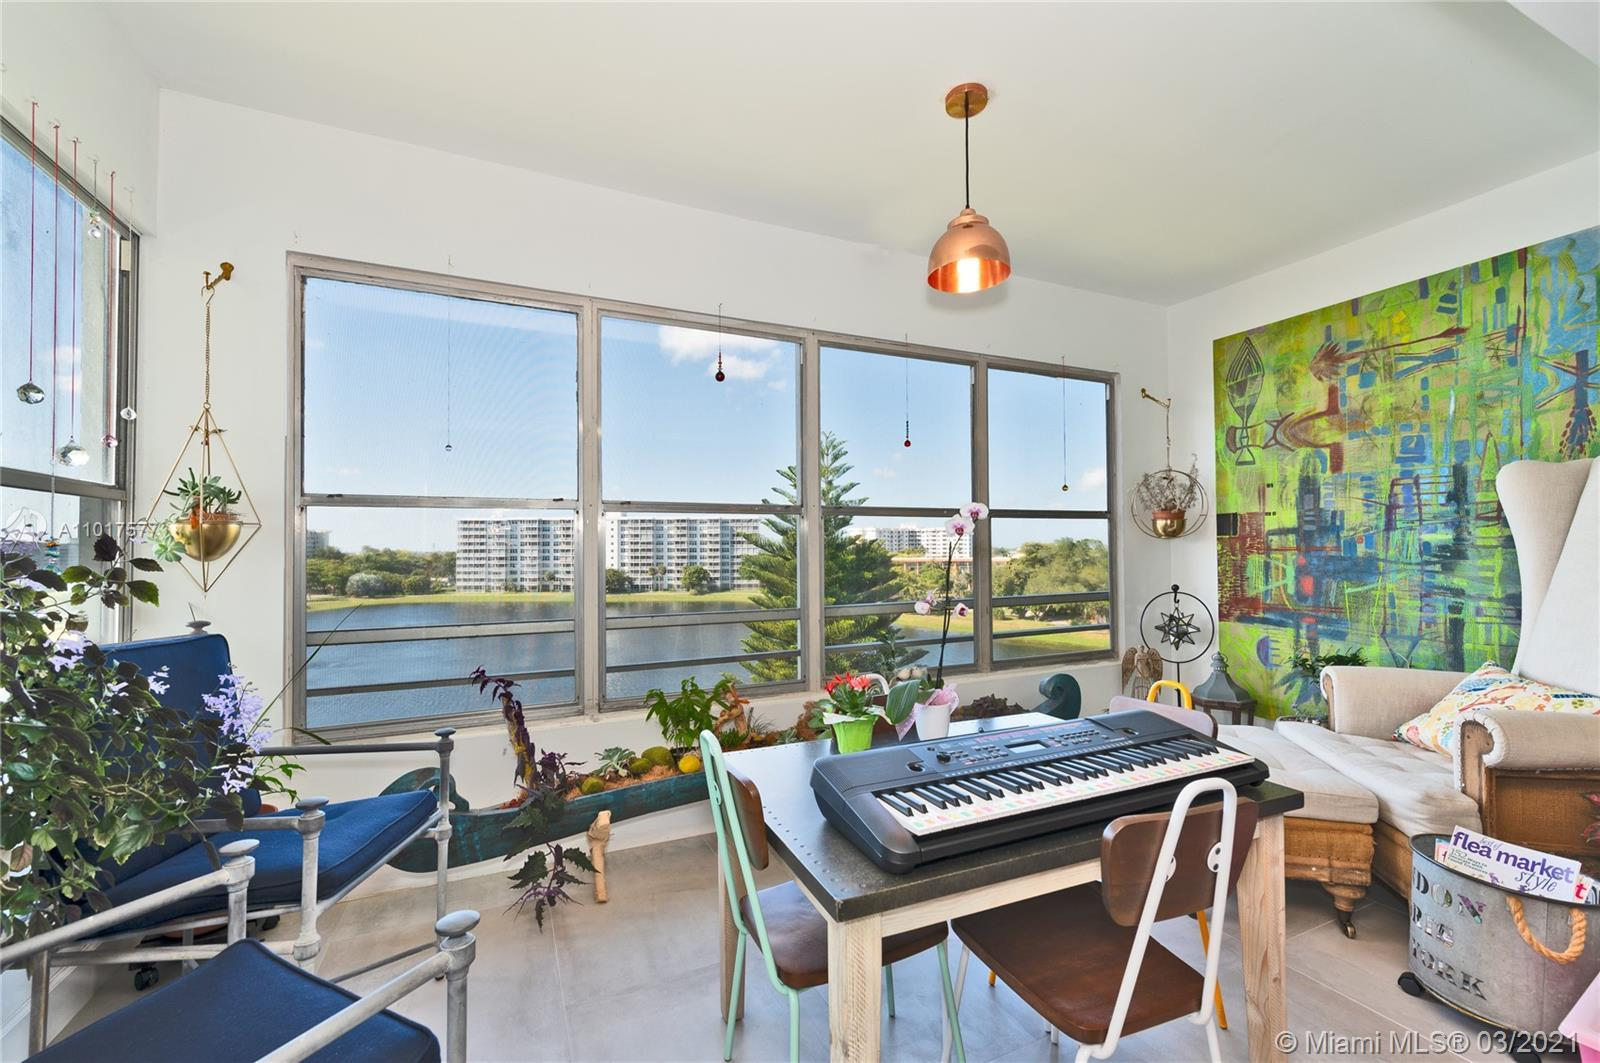 BEAUTIFUL AND COMPLETELY REMODELED 3 BEDS/2 BATHS CORNER PENT-HOUSE UNIT IN WELL MAINTAINED PALM AIR